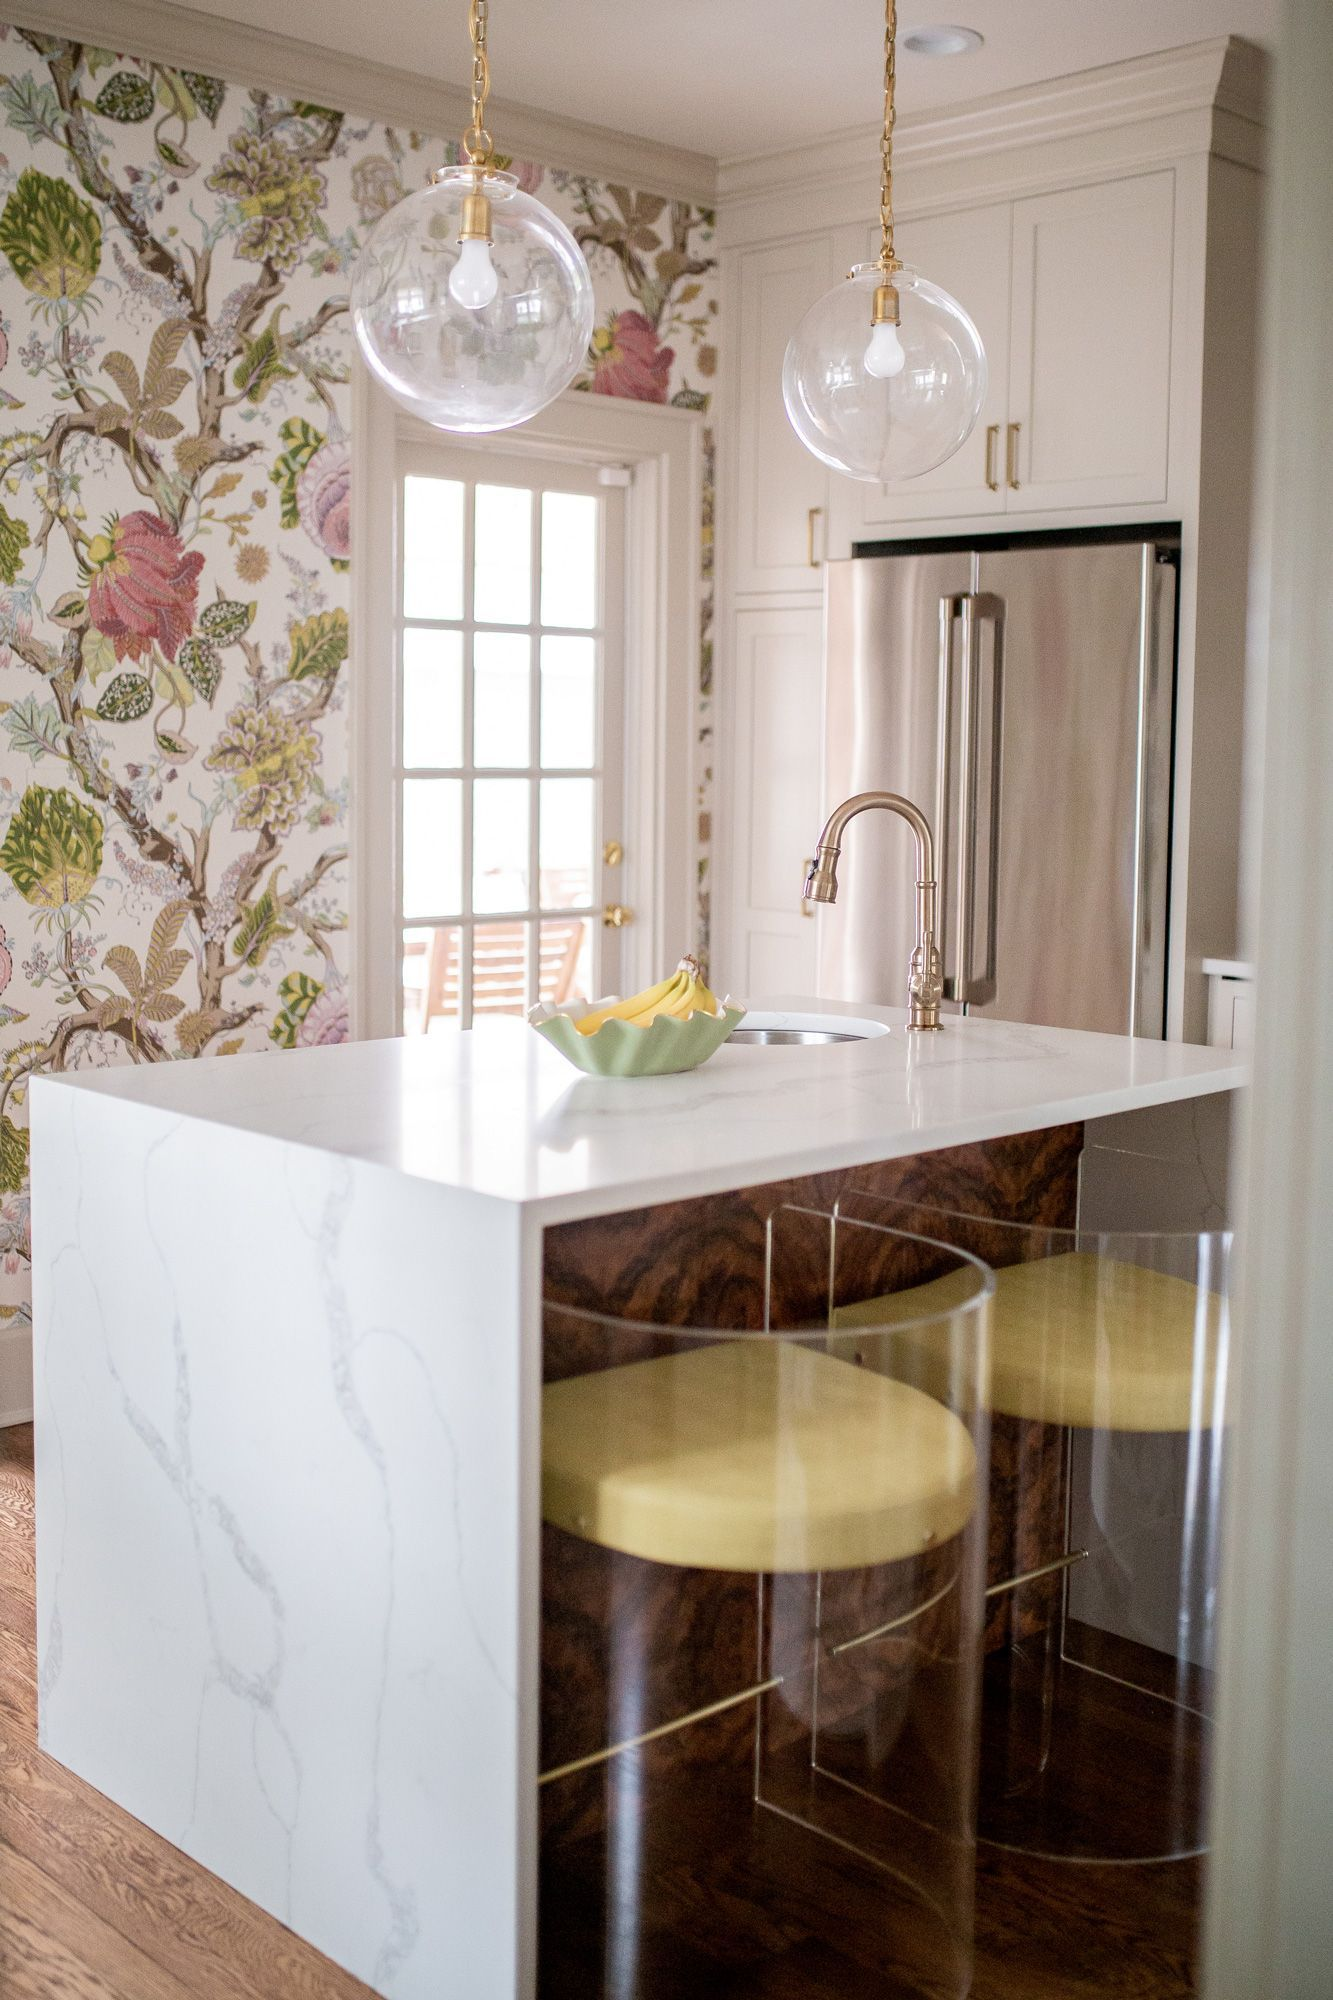 Our Southern Transitional Kitchen Design Glitter